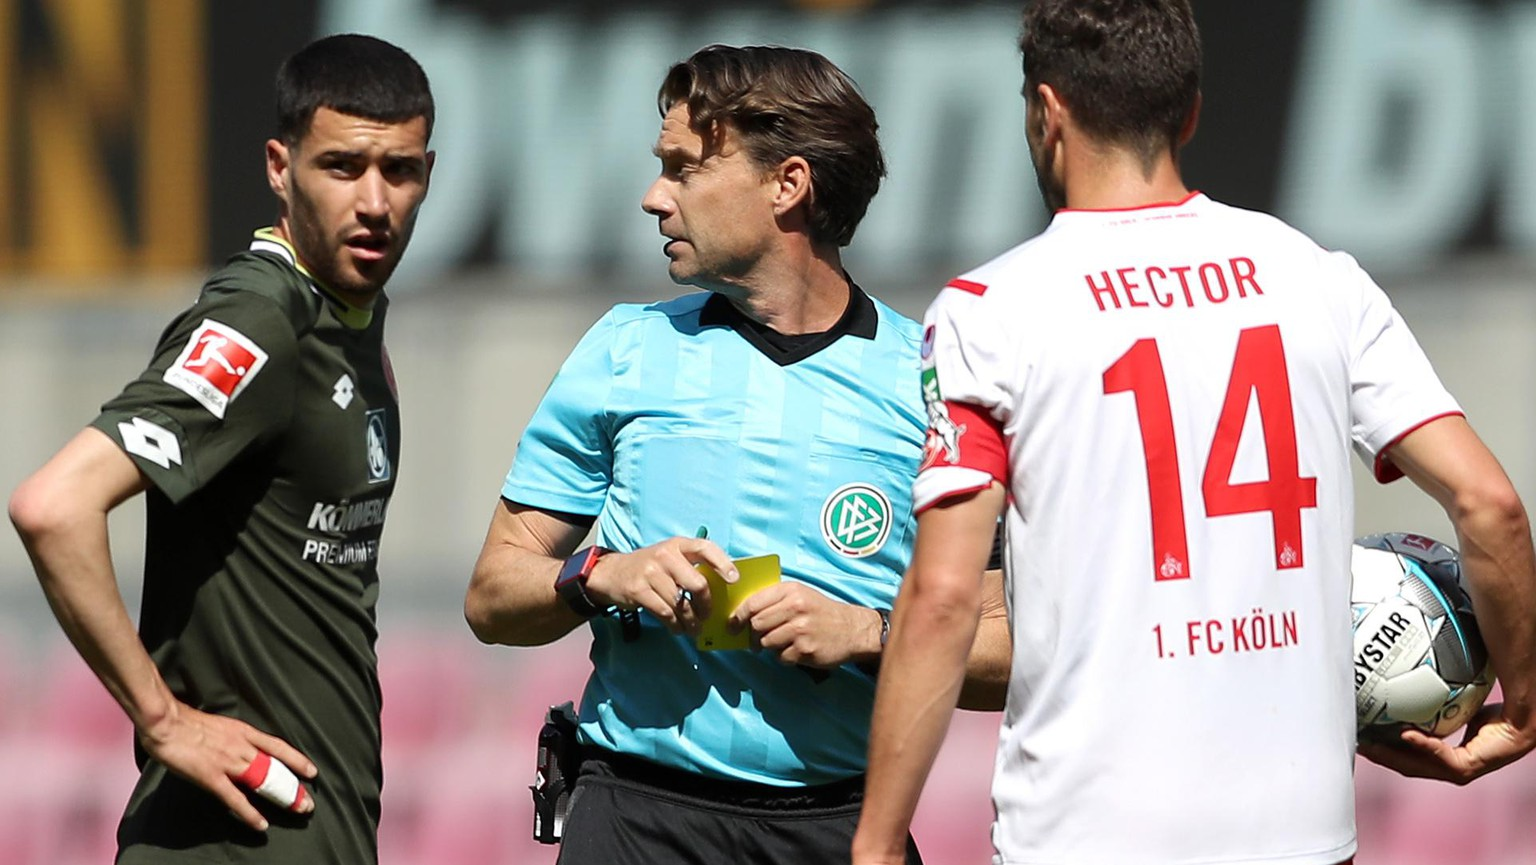 epa08427903 Referee Guido Winkmann discusses with Jonas Hector (R) of 1. FC Koeln during the German Bundesliga soccer match between 1. FC Koeln and 1. FSV Mainz 05 at RheinEnergieStadion in Cologne, Germany, 17 May 2020.  The German Bundesliga and Bundesliga Second Division are the first professional leagues to resume the season after the nationwide lockdown due to the ongoing Coronavirus (COVID-19) pandemic. All matches until the end of the season will be played behind closed doors.  EPA/LARS BARON / POOL DFL regulations prohibit any use of photographs as image sequences and/or quasi-video.